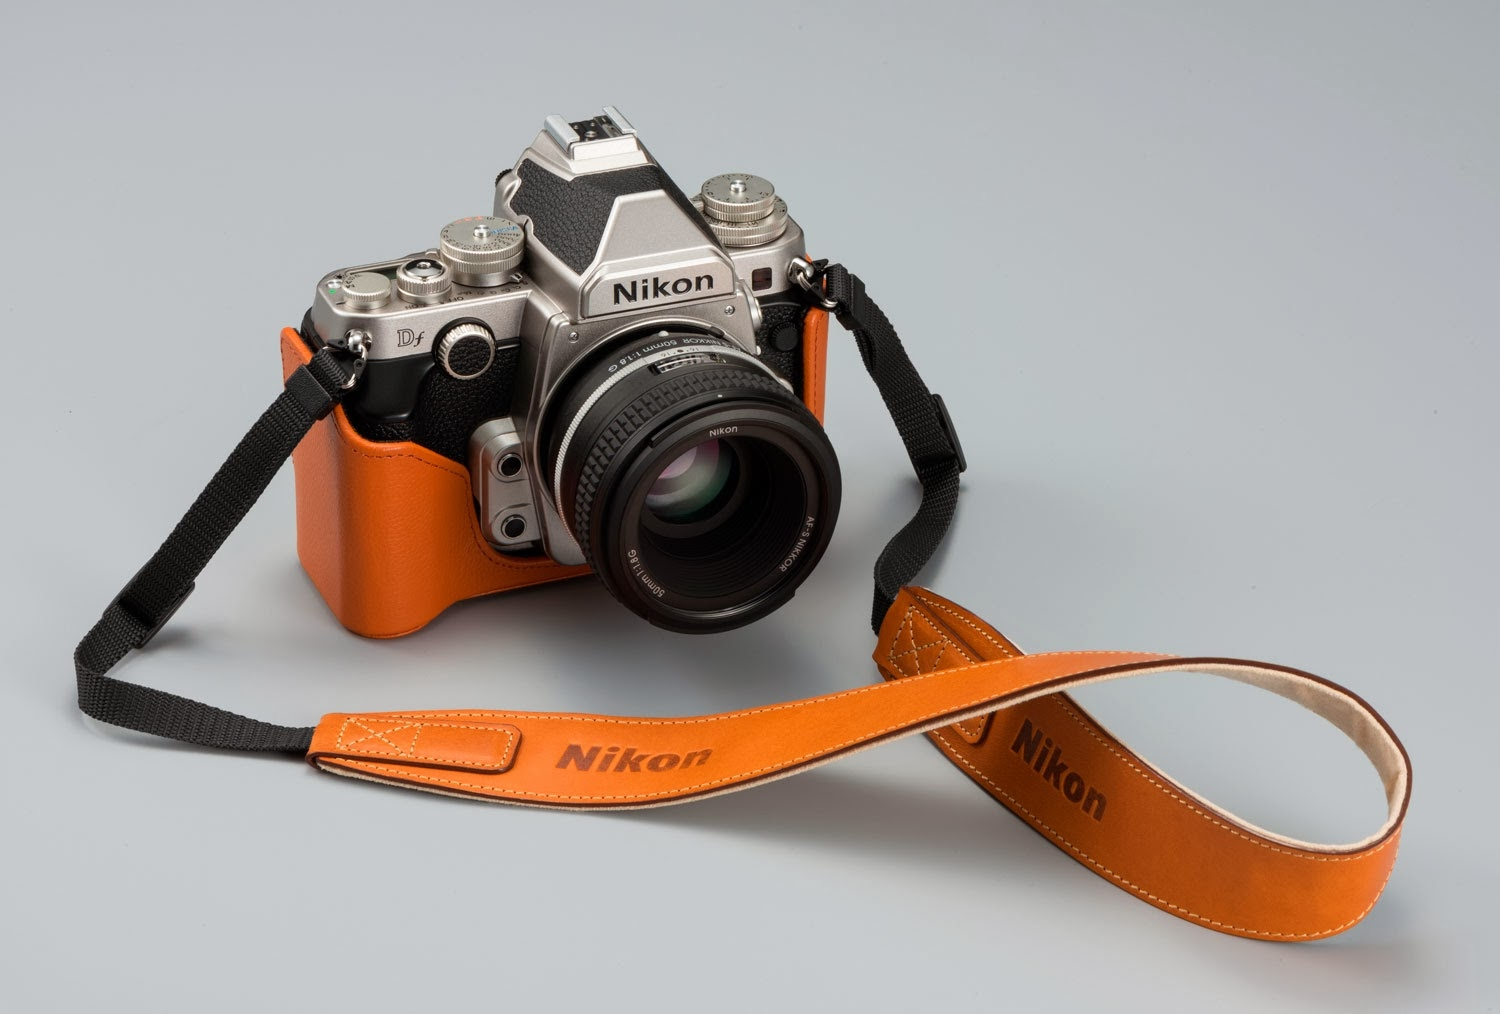 retro camera, classic camera, Nikon Df classic camera, New Nikon Digital camera, DSLR camera, Nikon Df, Wi-Fi,